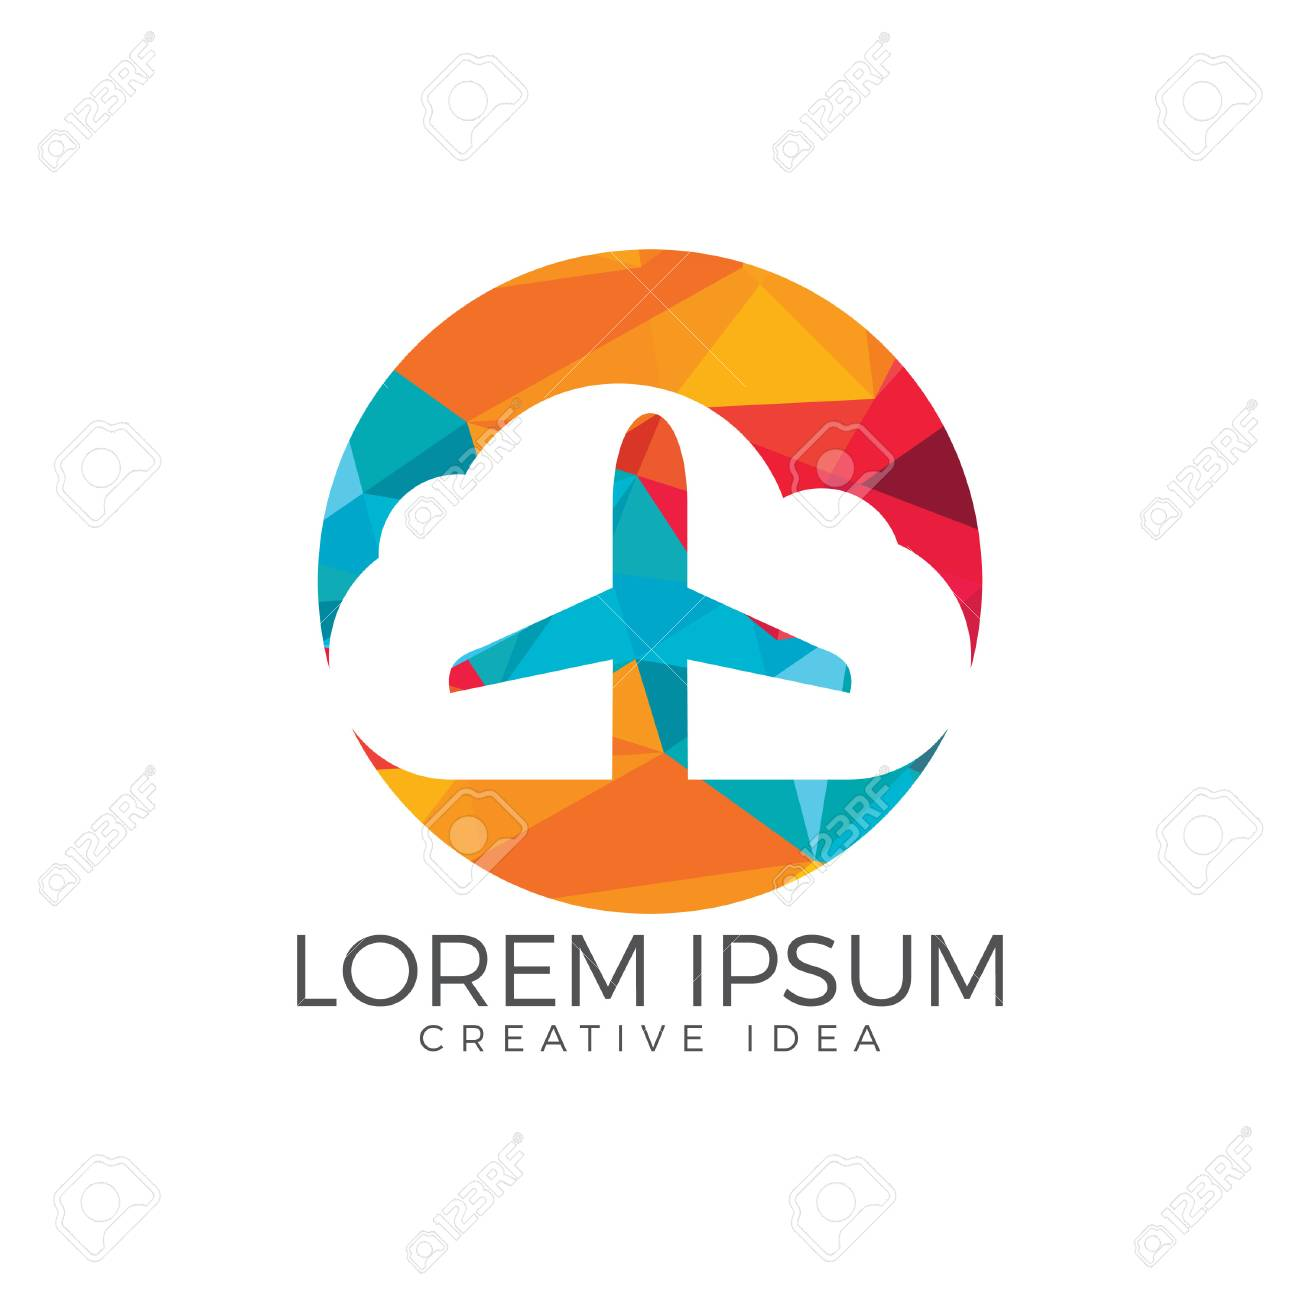 Creative Cloud Travel Logo Design Plane And Cloud Icon Design Royalty Free Cliparts Vectors And Stock Illustration Image 99294583